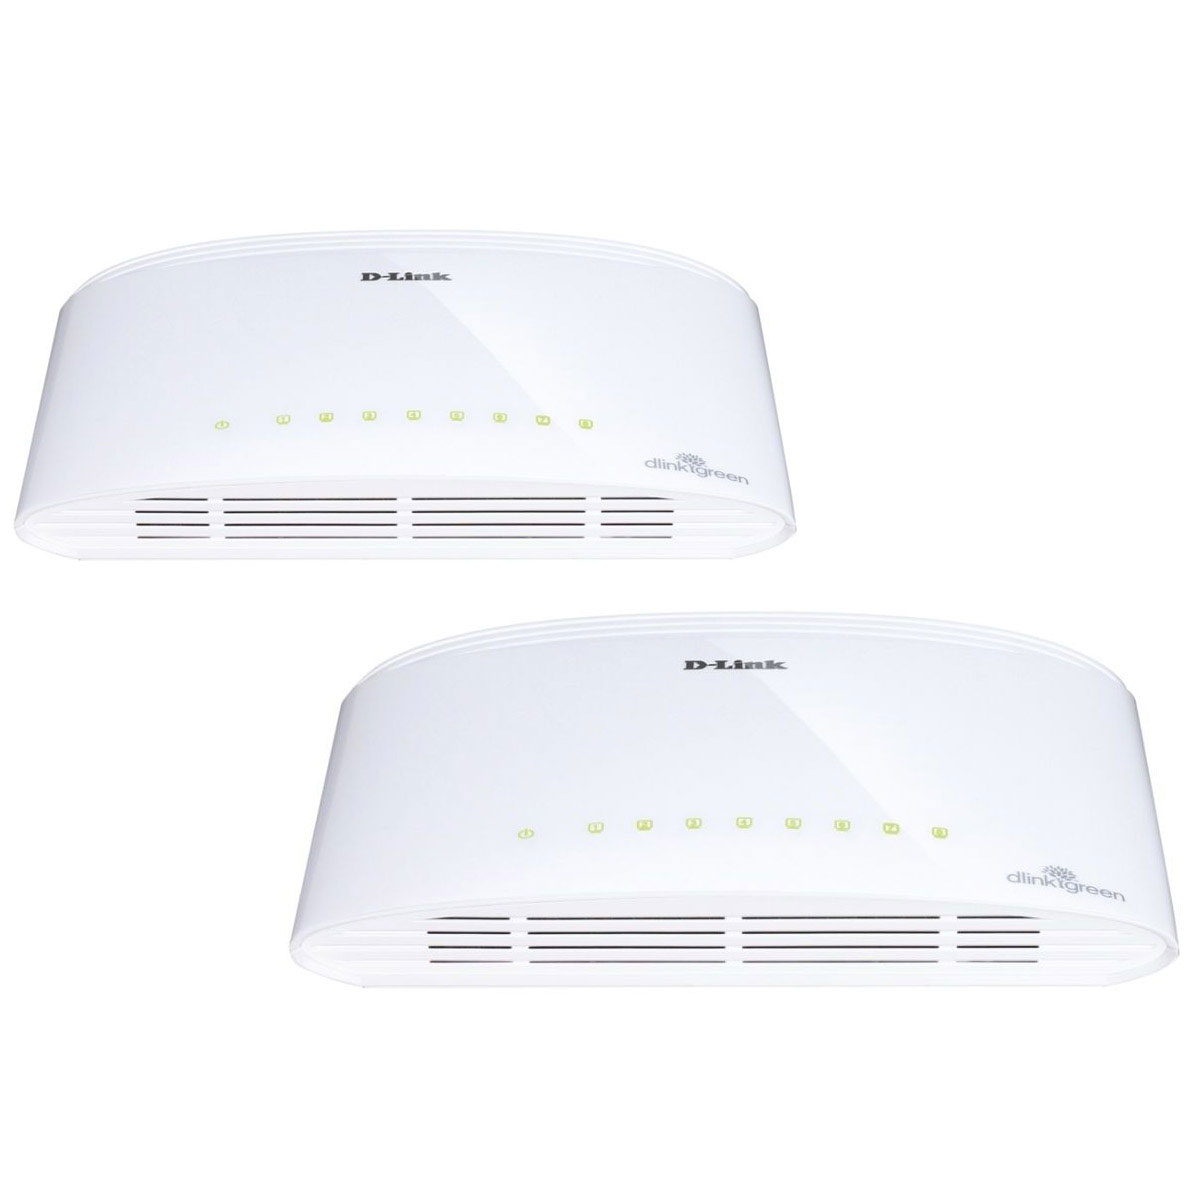 Switch D-Link DGS-1008D x2 Switch Gigabit 8 ports 10/100/1000Mbps - Pack de 2